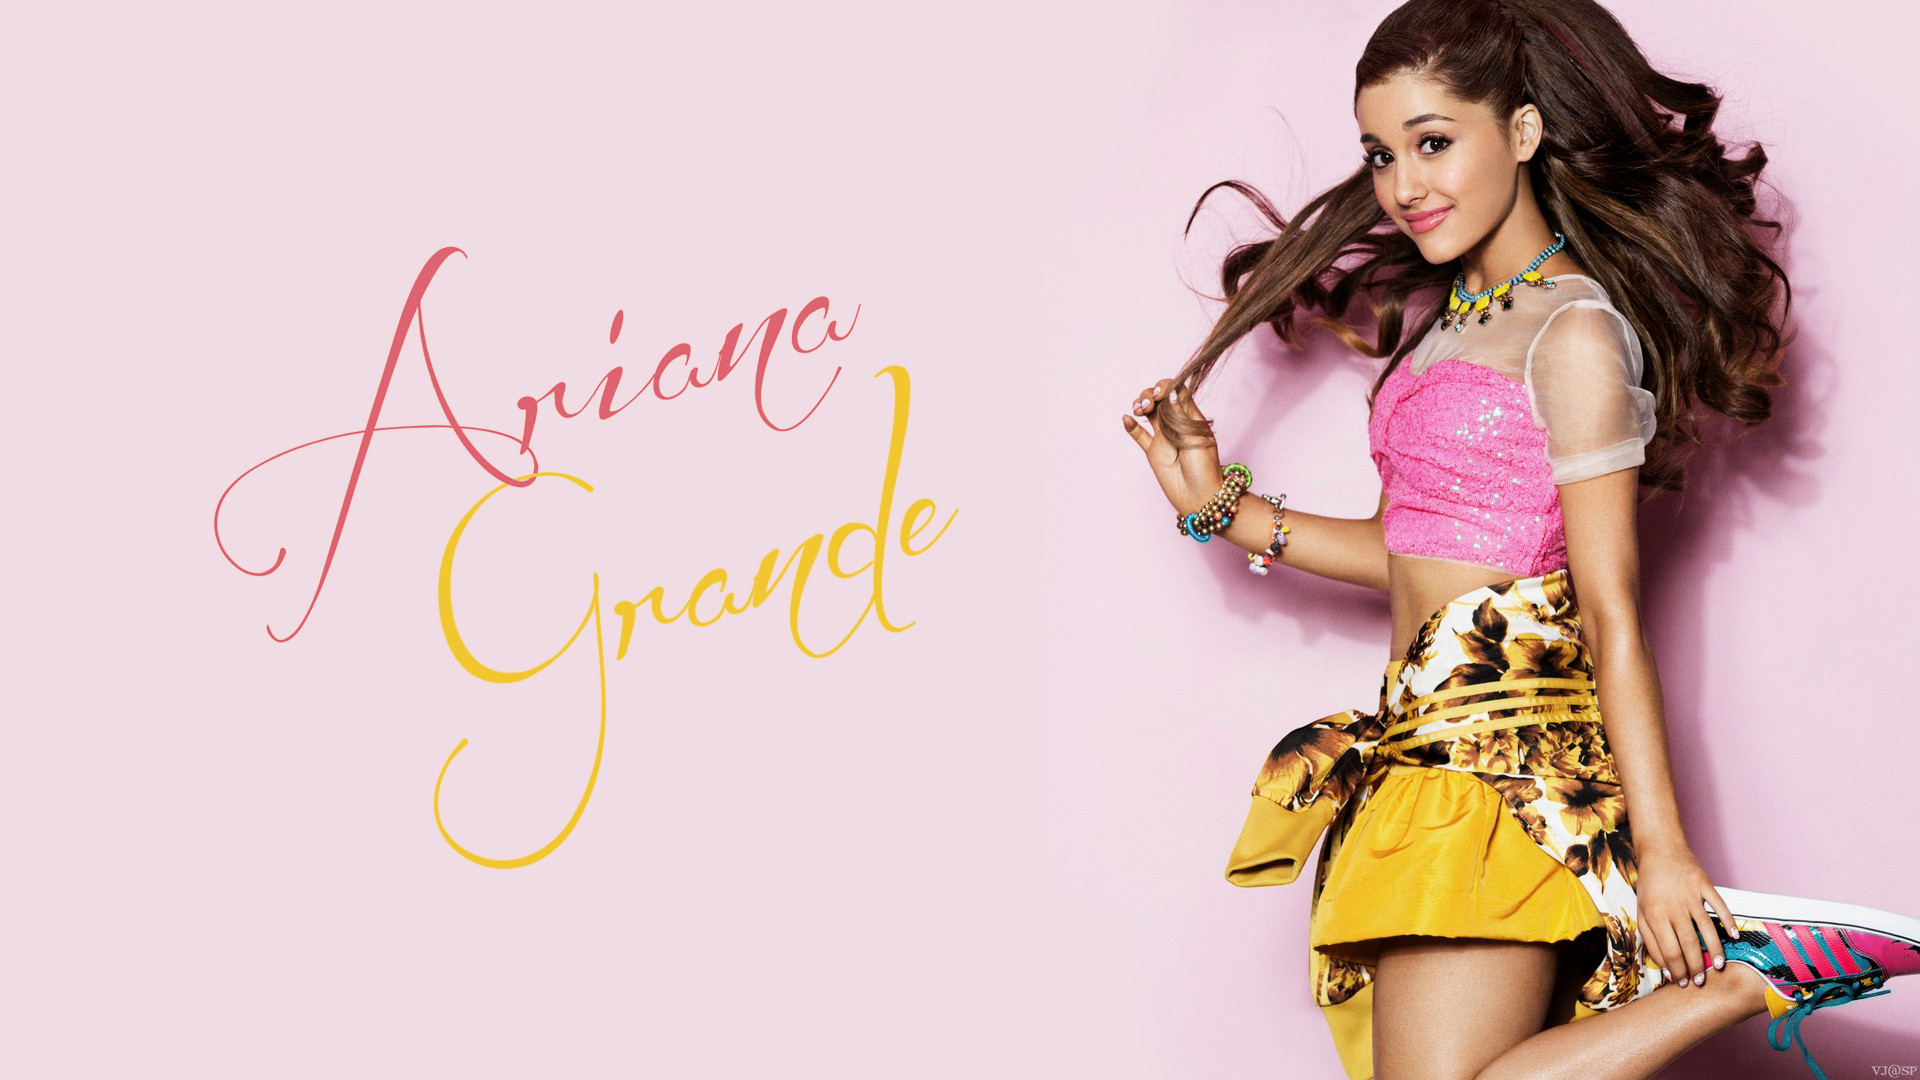 Ariana grande full hd wallpaper and background image 1920x1080 celebrity ariana grande wallpaper voltagebd Image collections